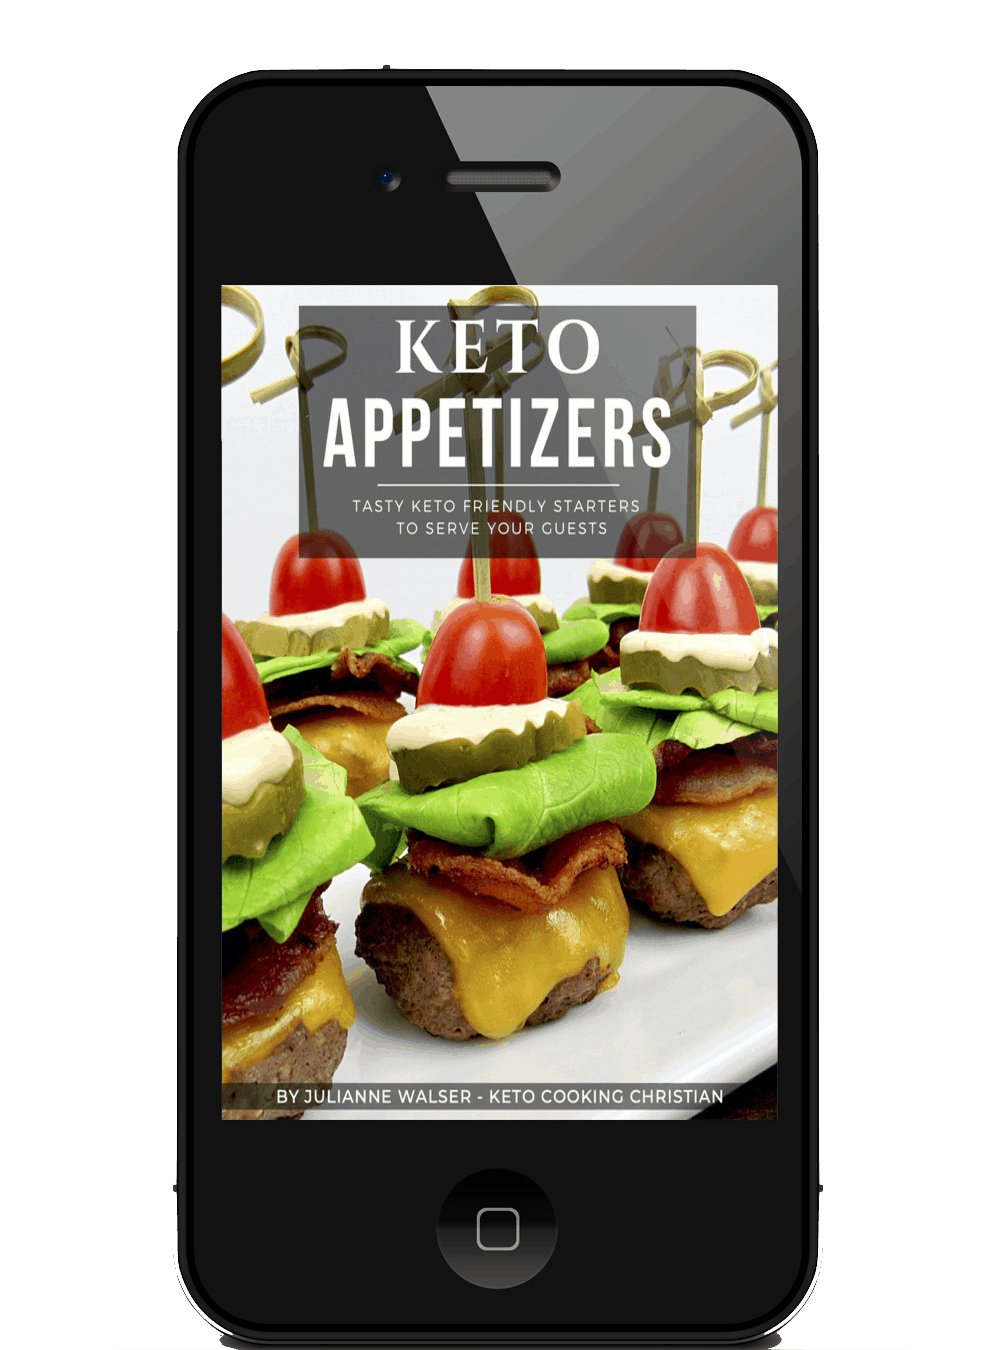 Keto Appetizers eBook on Mobile device